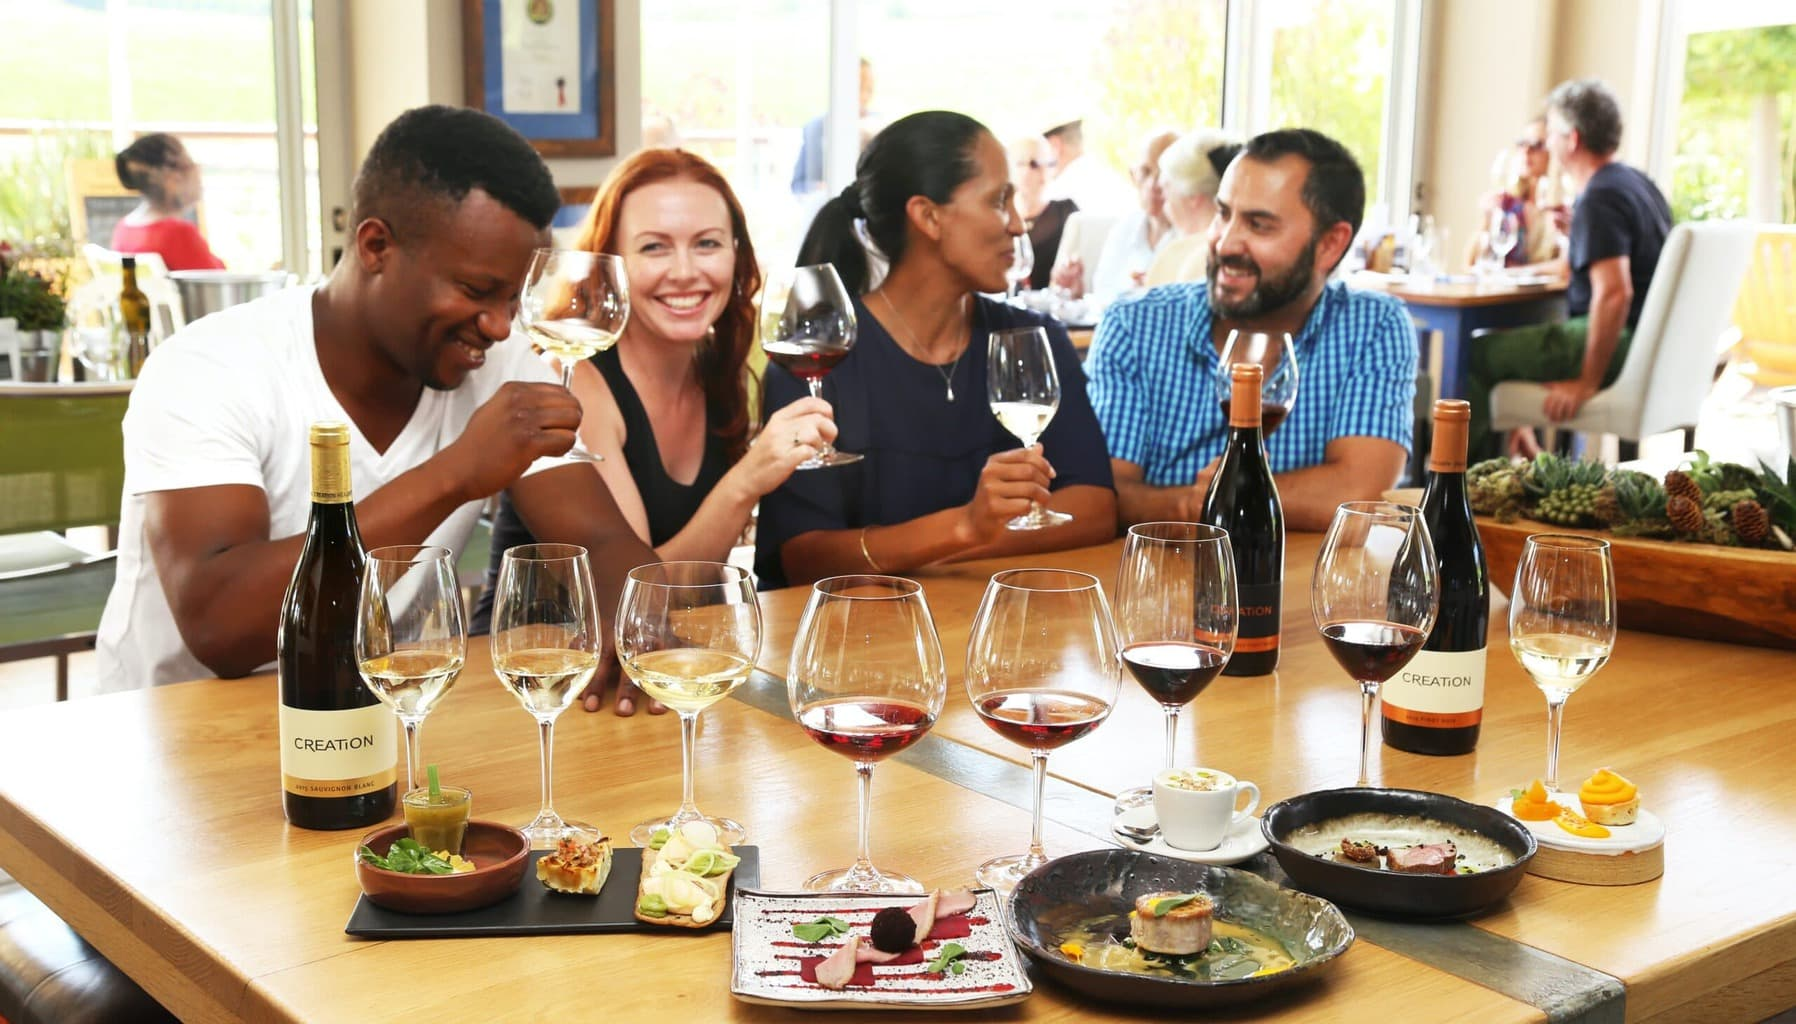 Wine and Food pairing at Creation